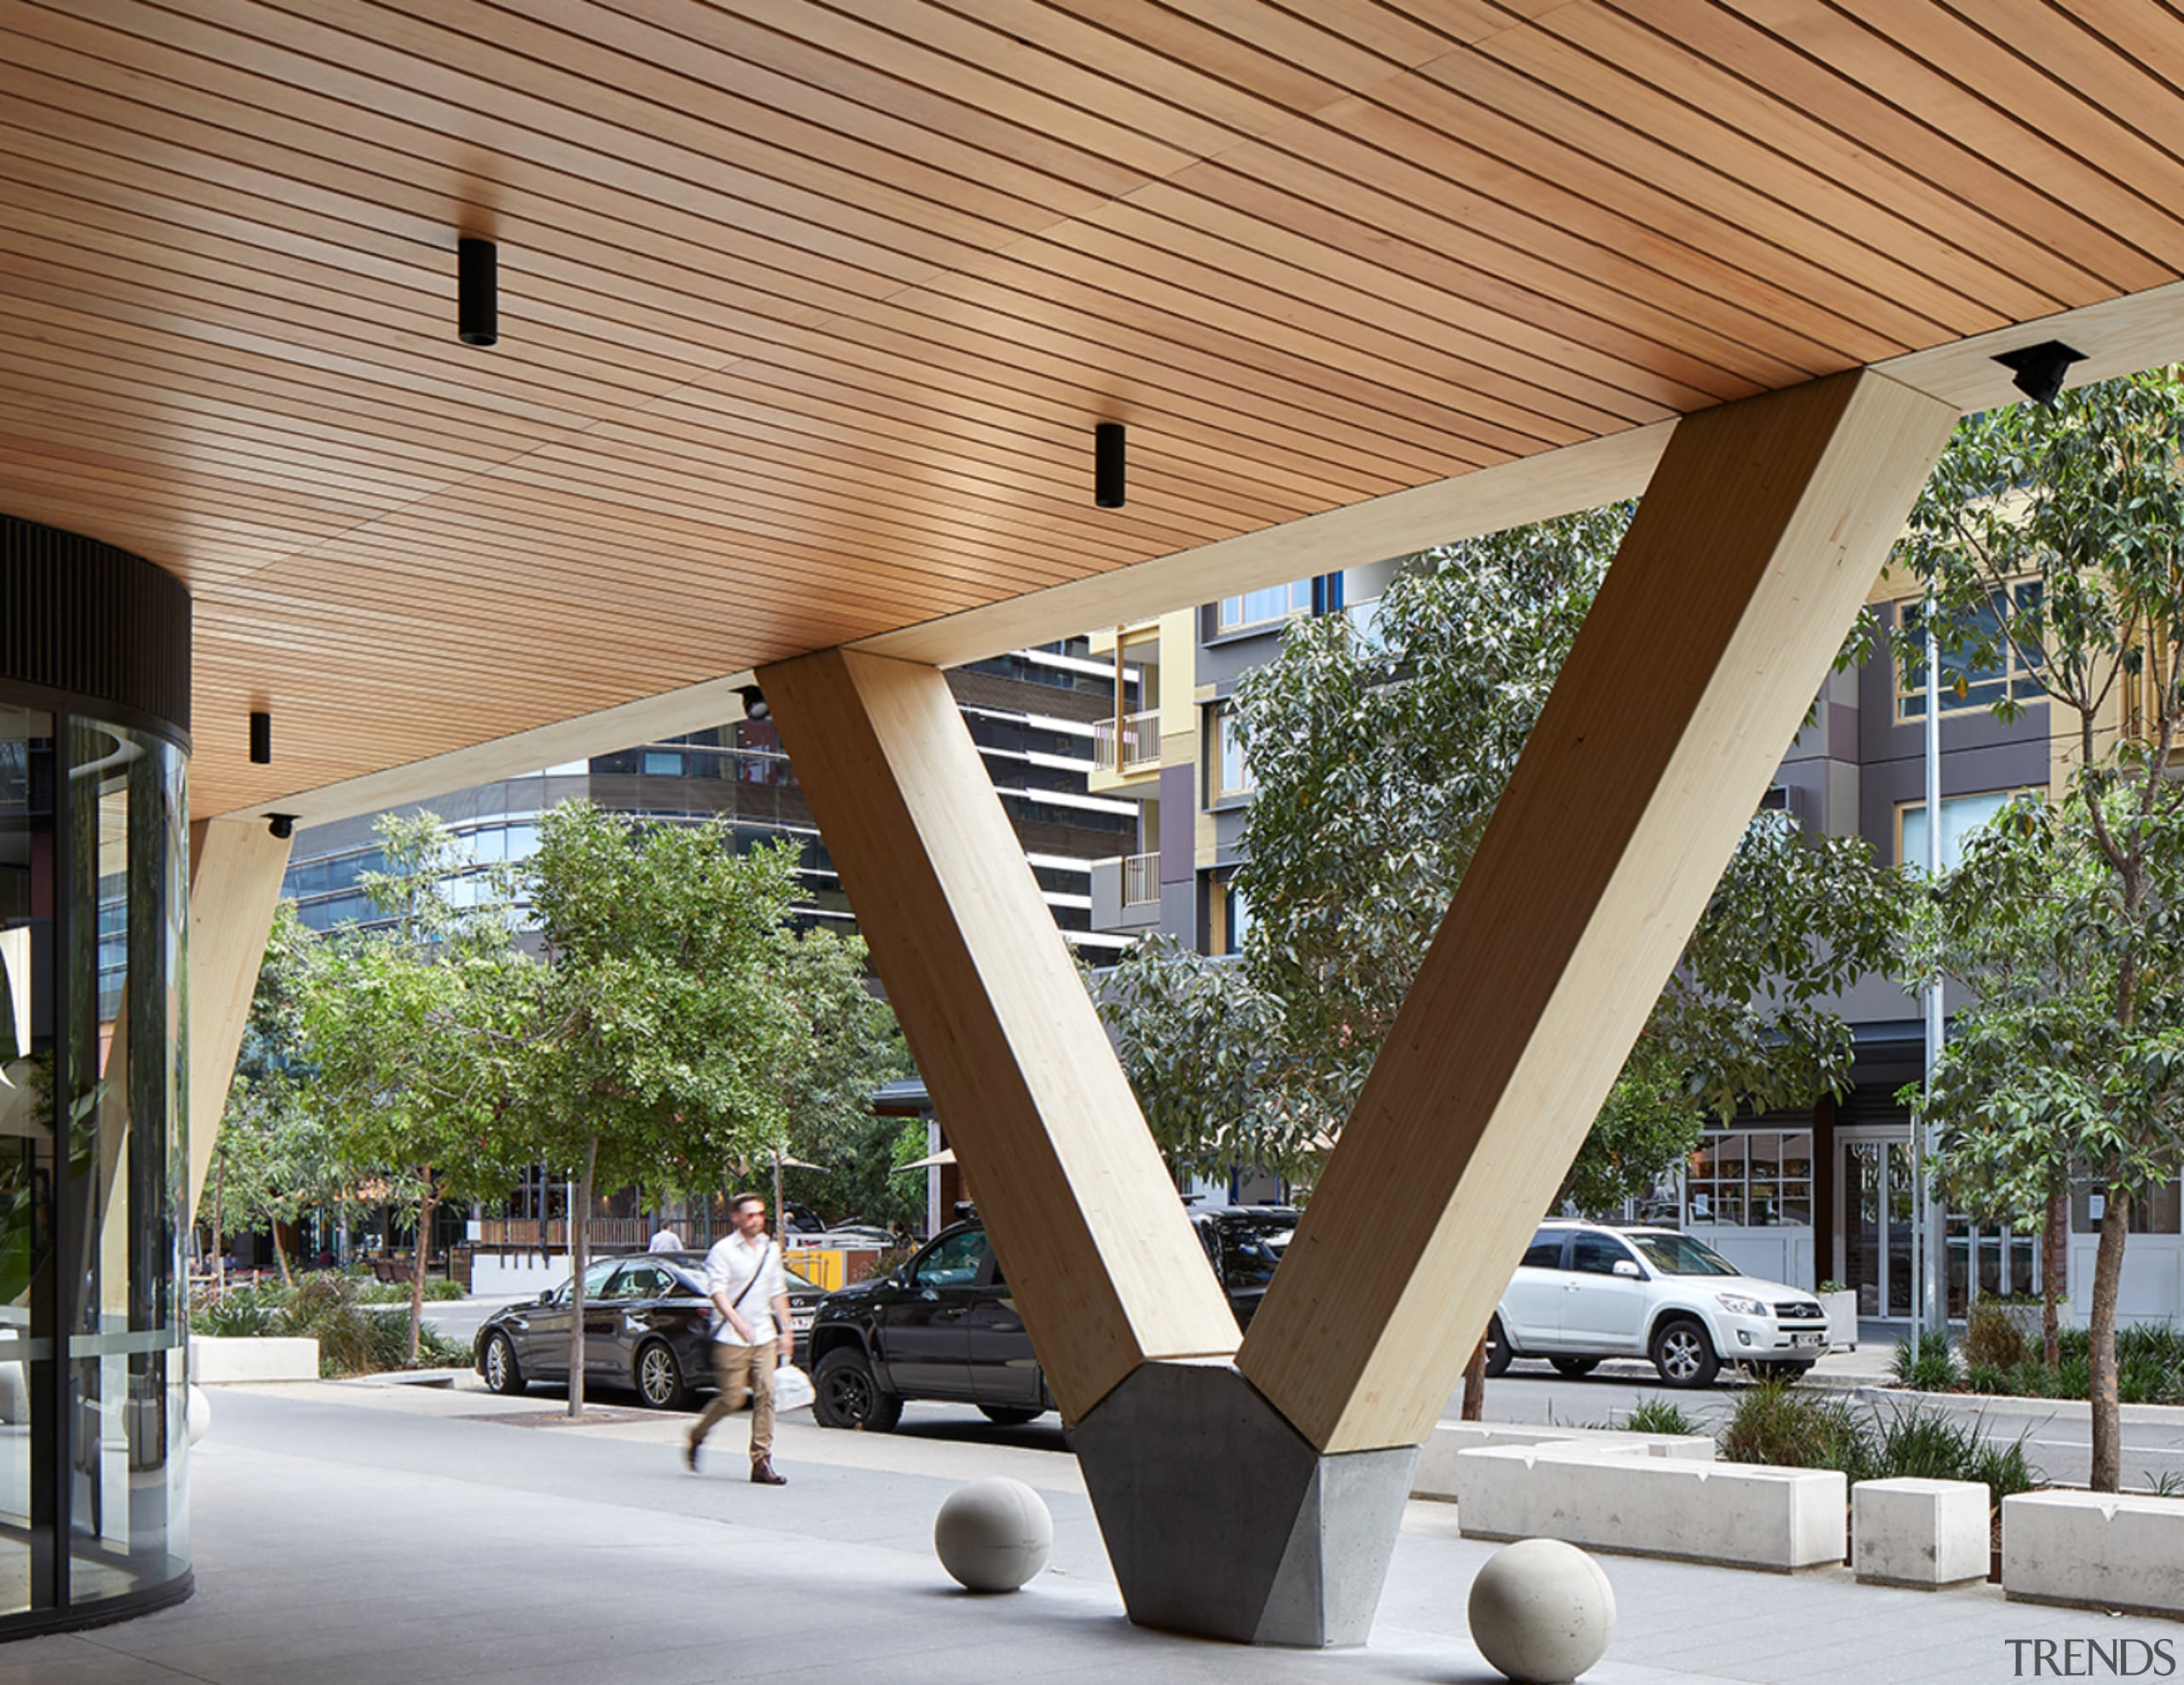 Raised on massive exposed timber v-columns and with architecture, structure, gray, brown